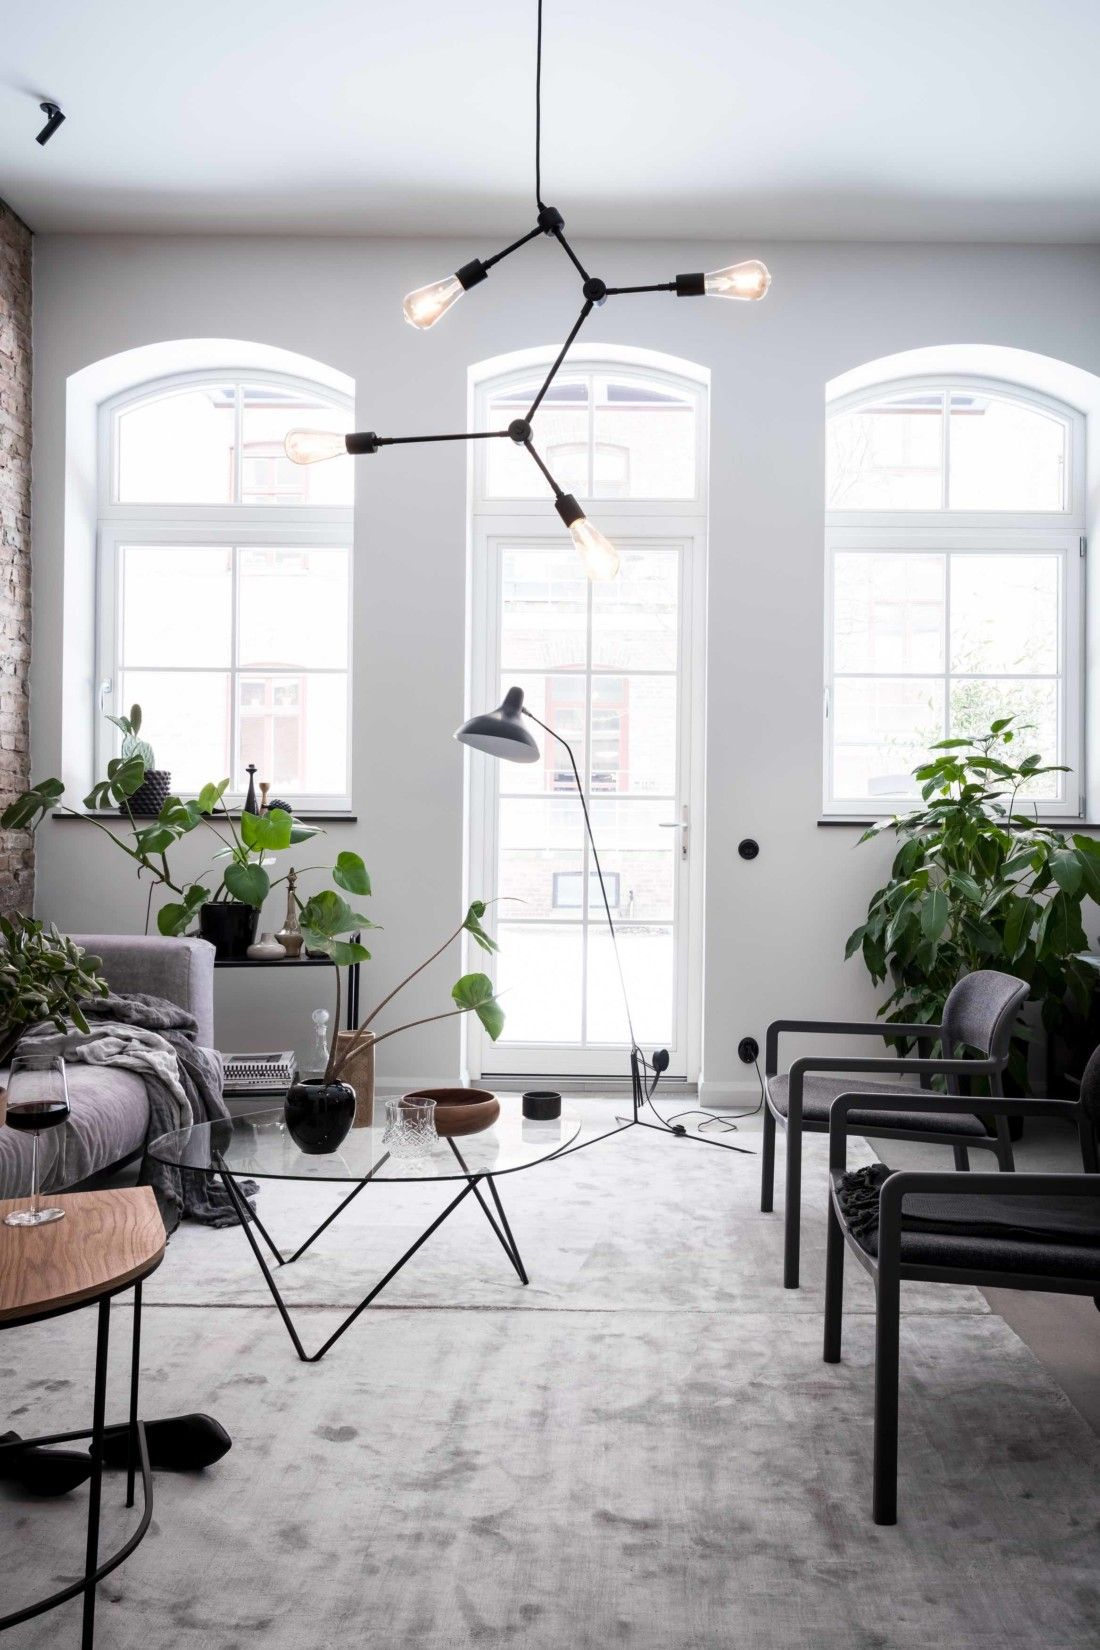 Exclusive Home With An Exposed Brick Wall H O M E Pinterest